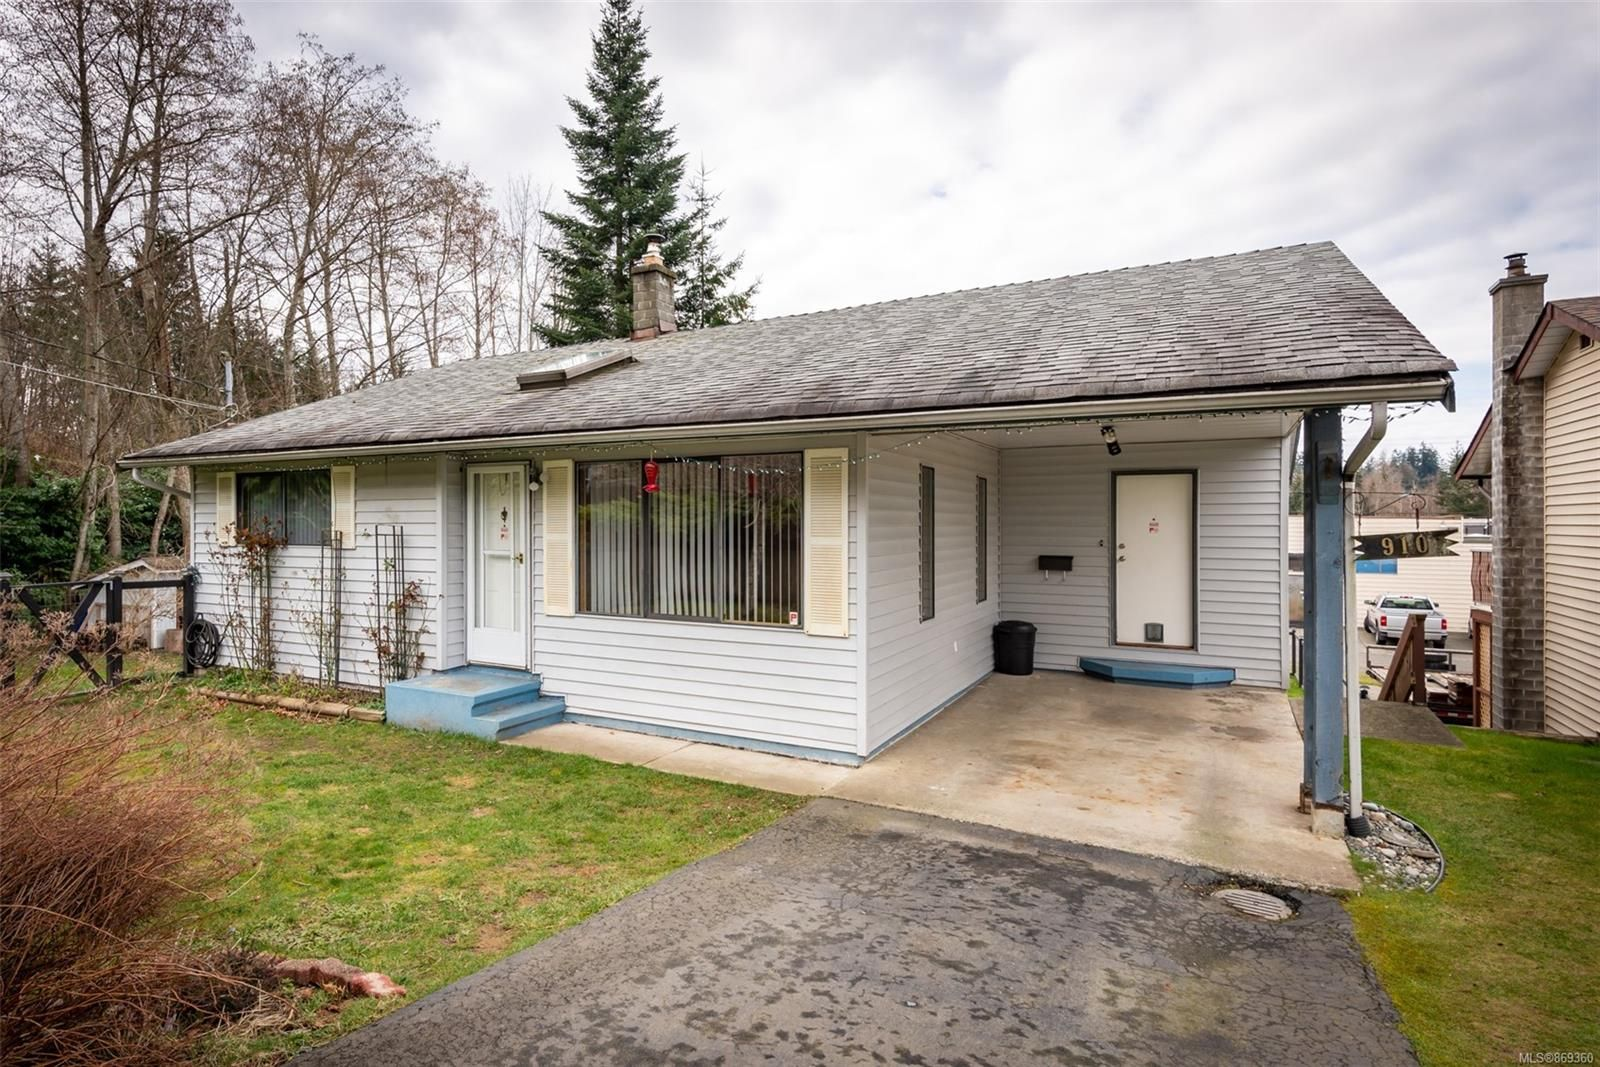 Main Photo: 910 Hemlock St in : CR Campbell River Central House for sale (Campbell River)  : MLS®# 869360